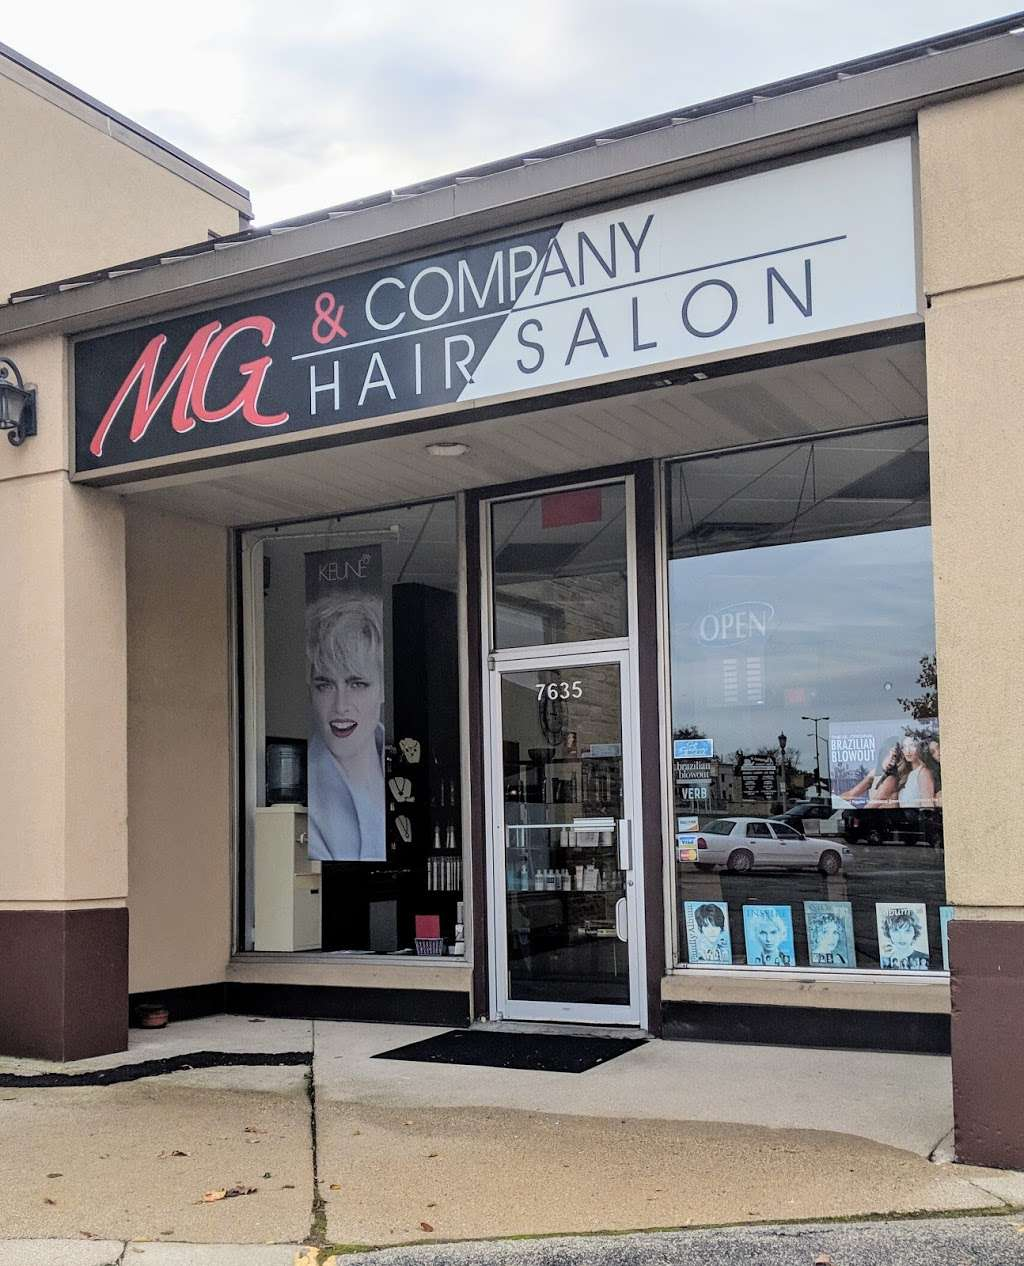 Mg & Company Hair Salon - hair care  | Photo 6 of 10 | Address: 7635 W Beloit Rd, West Allis, WI 53219, USA | Phone: (414) 541-6990